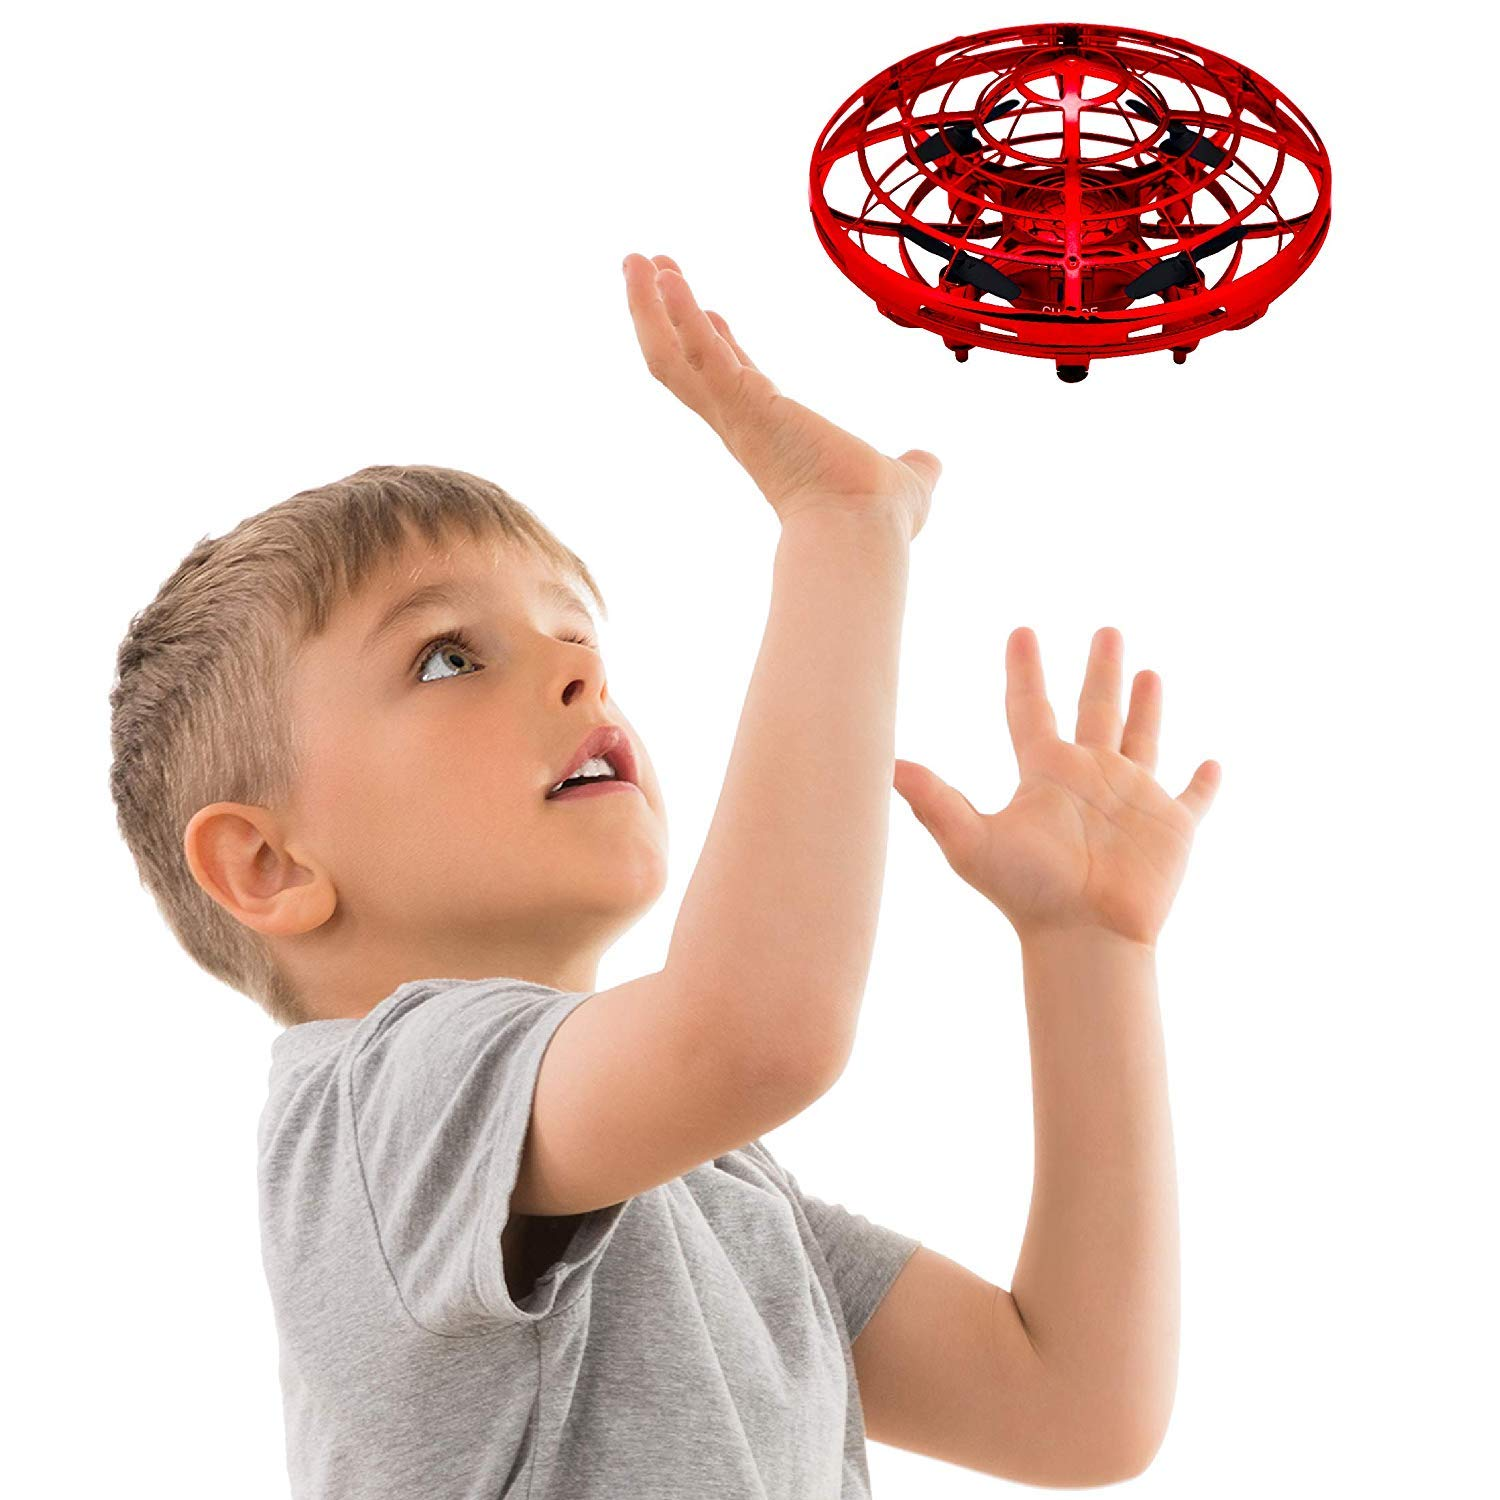 Jettime Flying Toys Drones for Kids Mini Drones Hand Controlled UFO Flying Ball with Infrared Induction Interactive Drone Indoor Toys 360° Rotating and LED Lights for Boys and Girls, Red